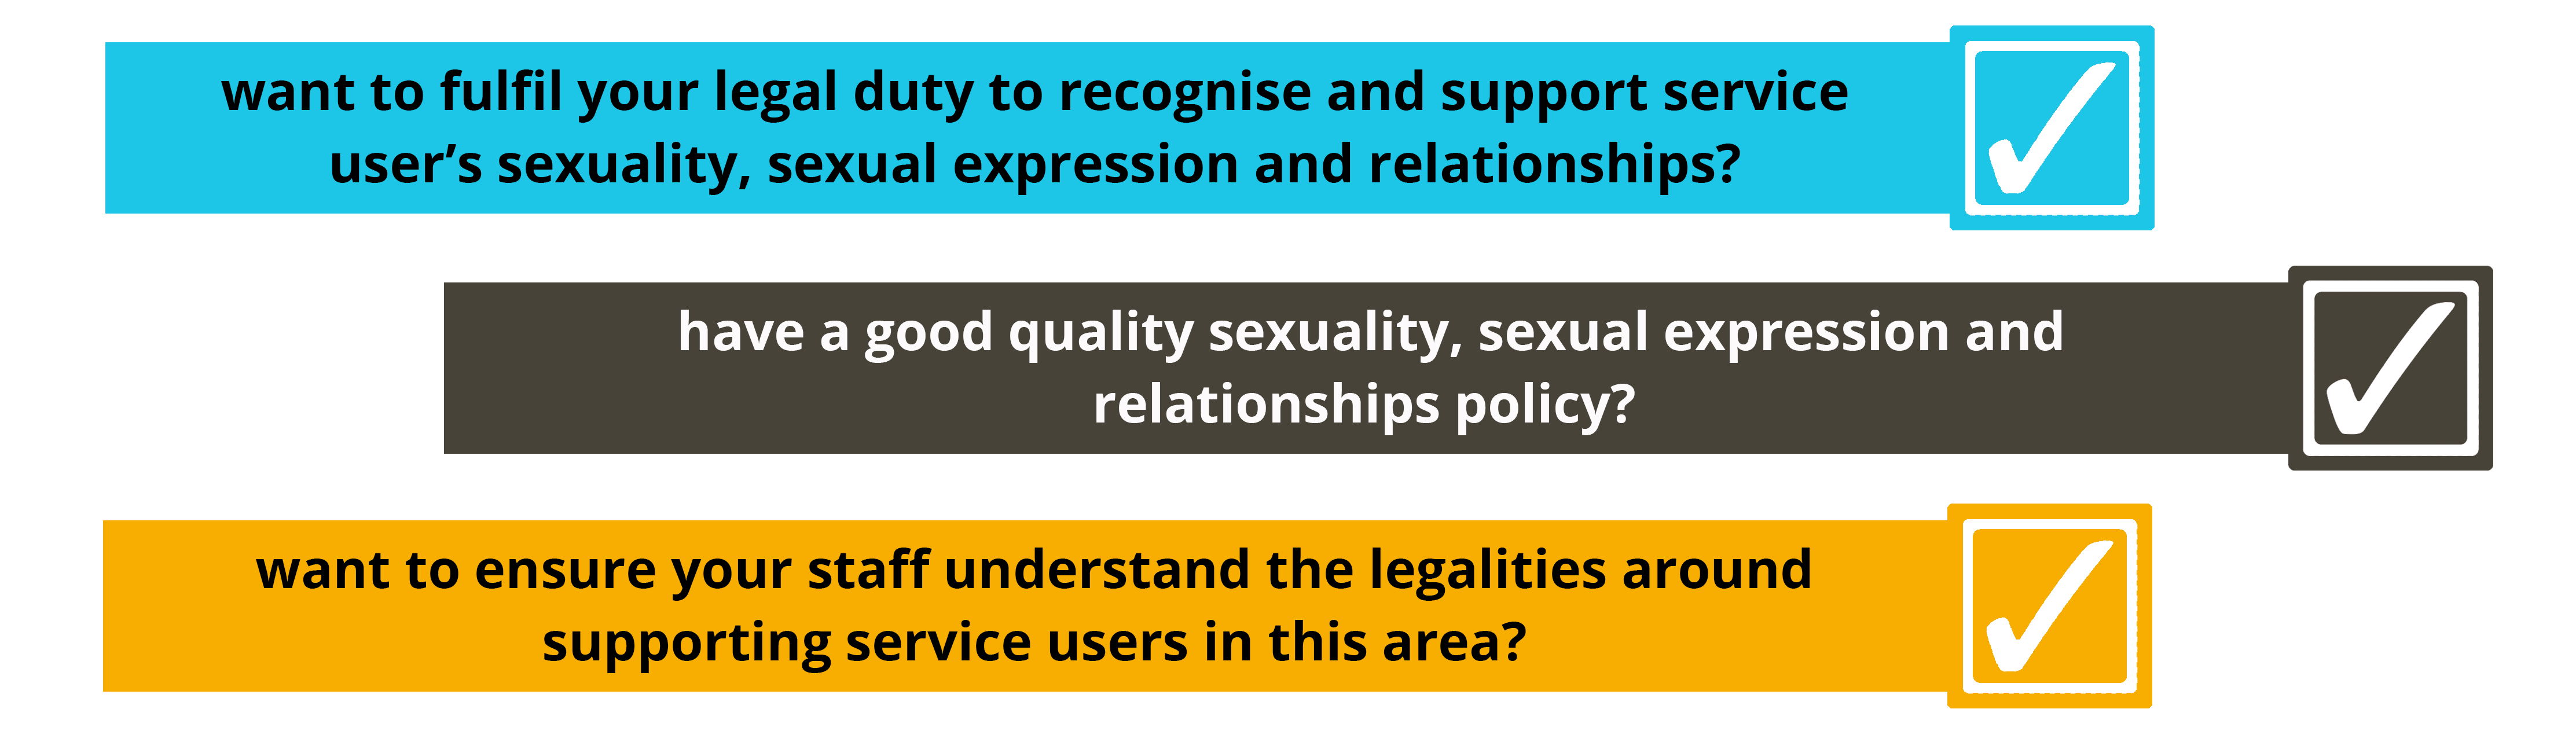 want to fulfil your legal duty to recognise and support service user's sexuality, sexual expression and relationships? have a good quality sexuality, sexual expression and relationships policy? want to ensure your staff understand the legalities around supporting service users in this area?